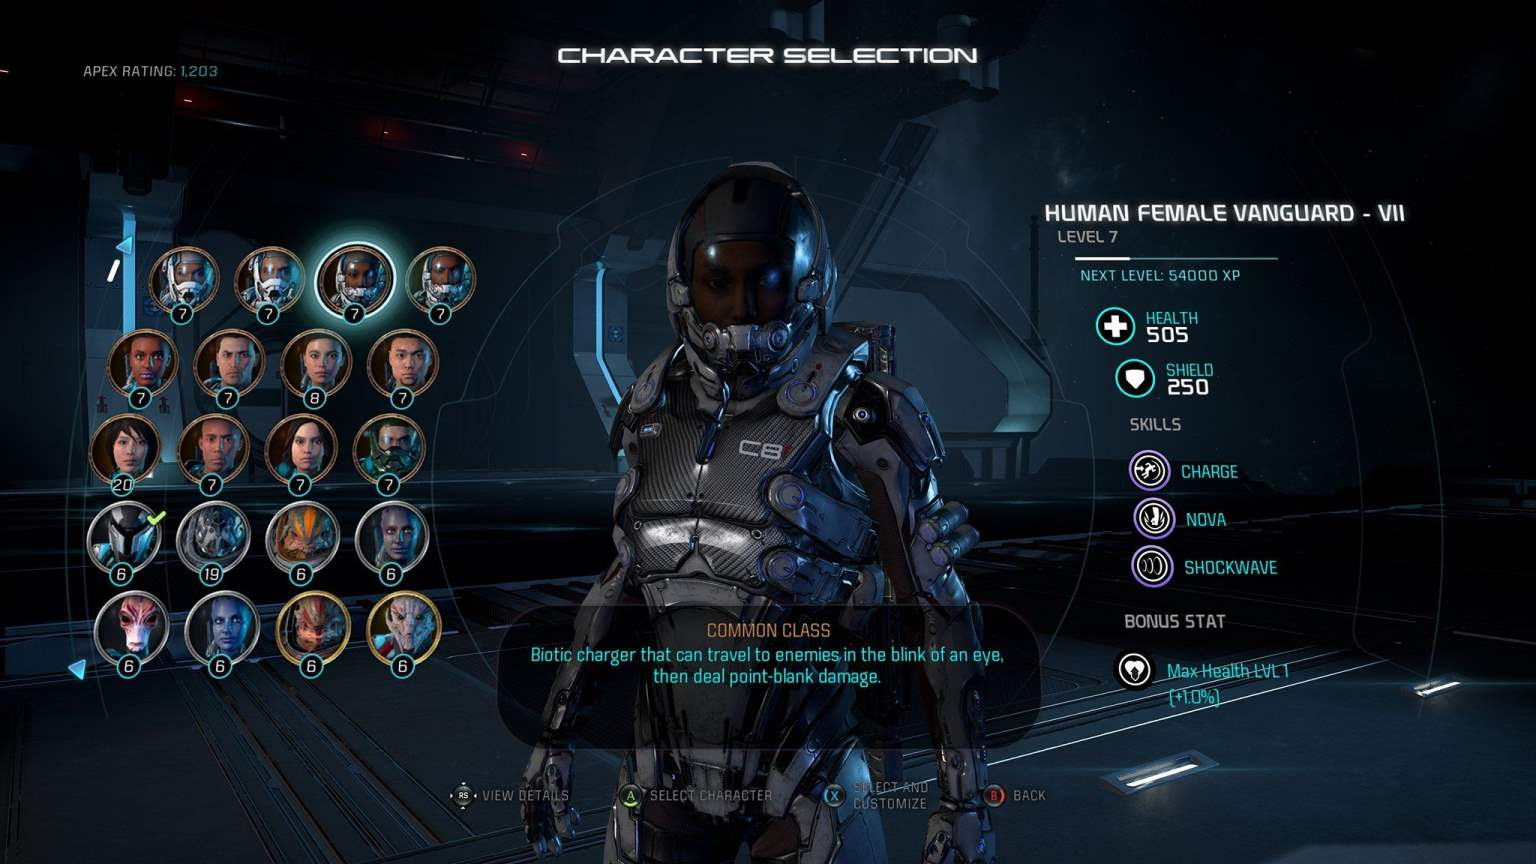 'Mass Effect: Andromeda' News: Upcoming Game's Multiplayer Component To Be Playable at PAX East